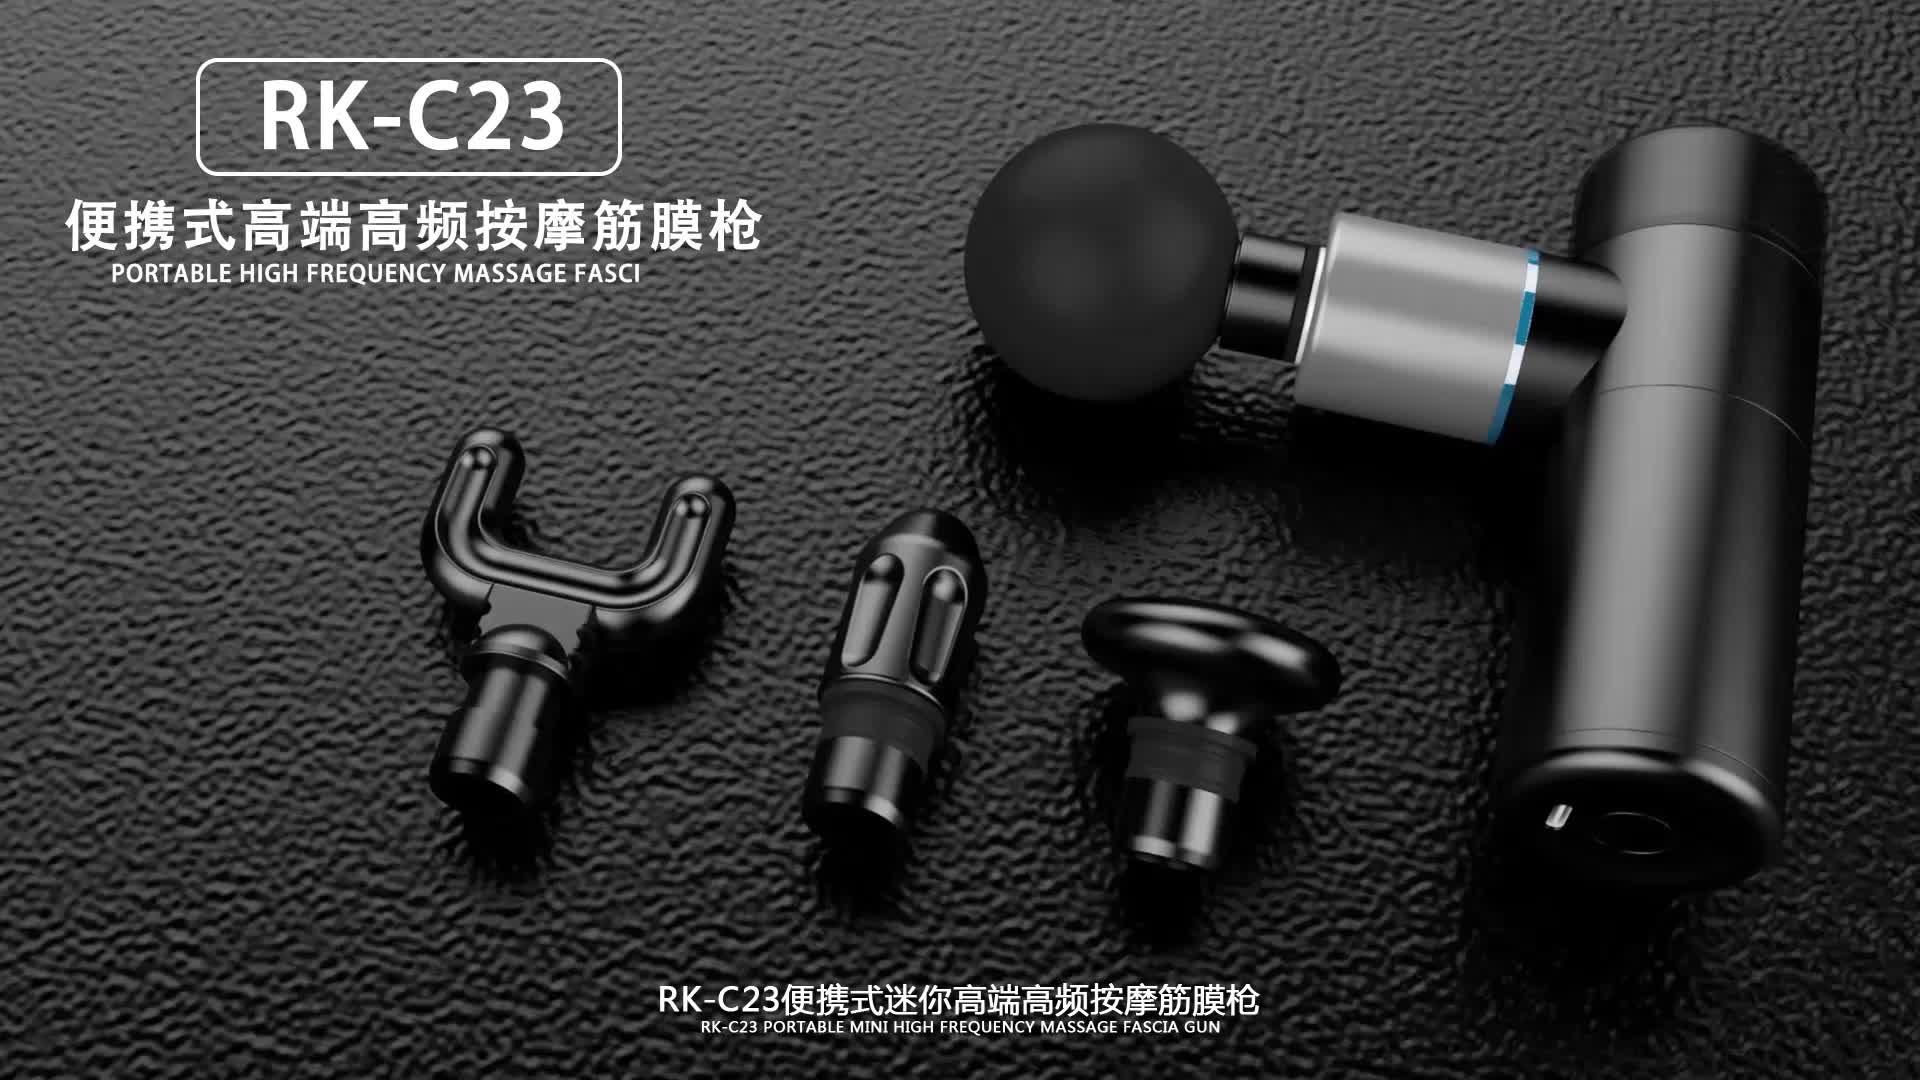 RK-C23 OEM private label electronic therapy full body fascia massage gun with nice portable packaging